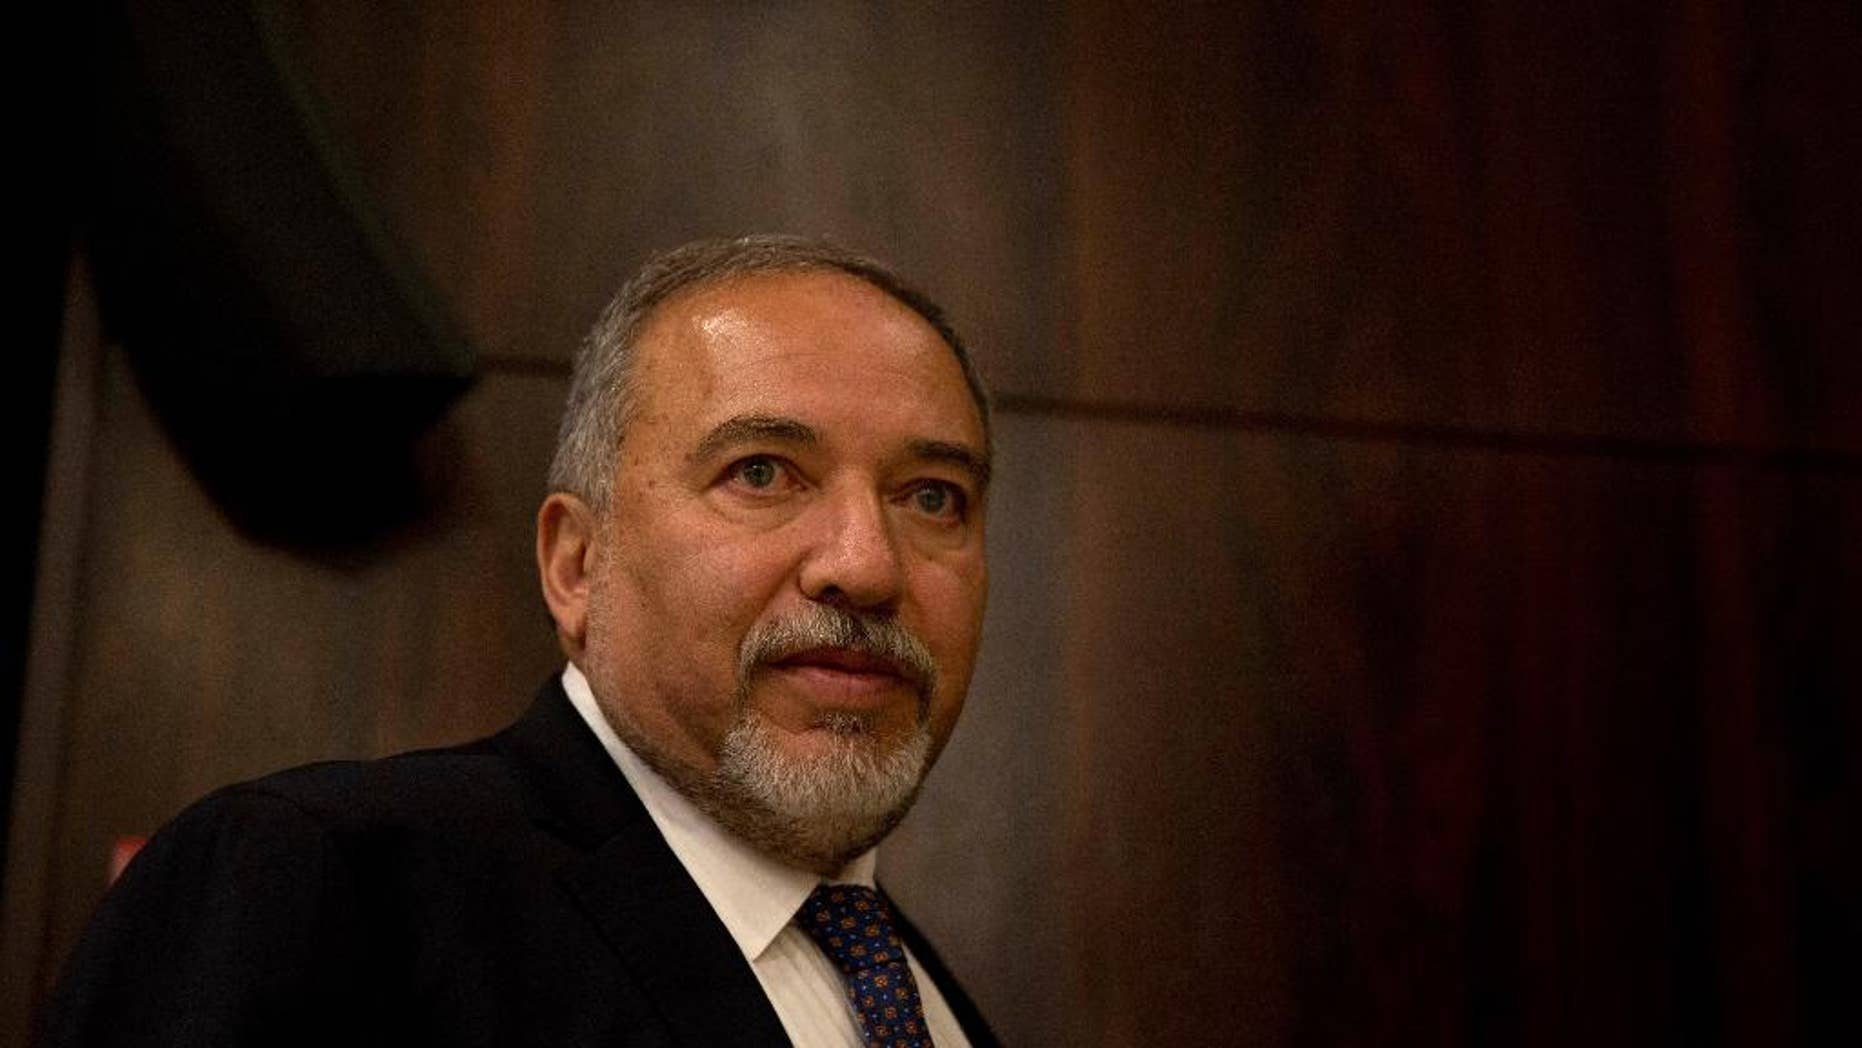 FILE -- In this May 30, 2016 file photo, Israeli Defense Minister Avigdor Lieberman appears at the Knesset, Israel's parliament, before his swearing-in ceremony, in Jerusalem. The Palestinian newspaper Al Quds, published a rare interview with Lieberman, where he reiterated his long held positions on Monday, Oct. 24, 2016. But for a Palestinian paper to interview an Israeli official is unusual and it comes at a time of heightened tensions and mistrust between the sides. Lieberman warned Gaza's Hamas rulers and dismissed Palestinian President Mahmoud Abbas. Palestinians were angered by the interview. (AP Photo/Ariel Schalit, File)